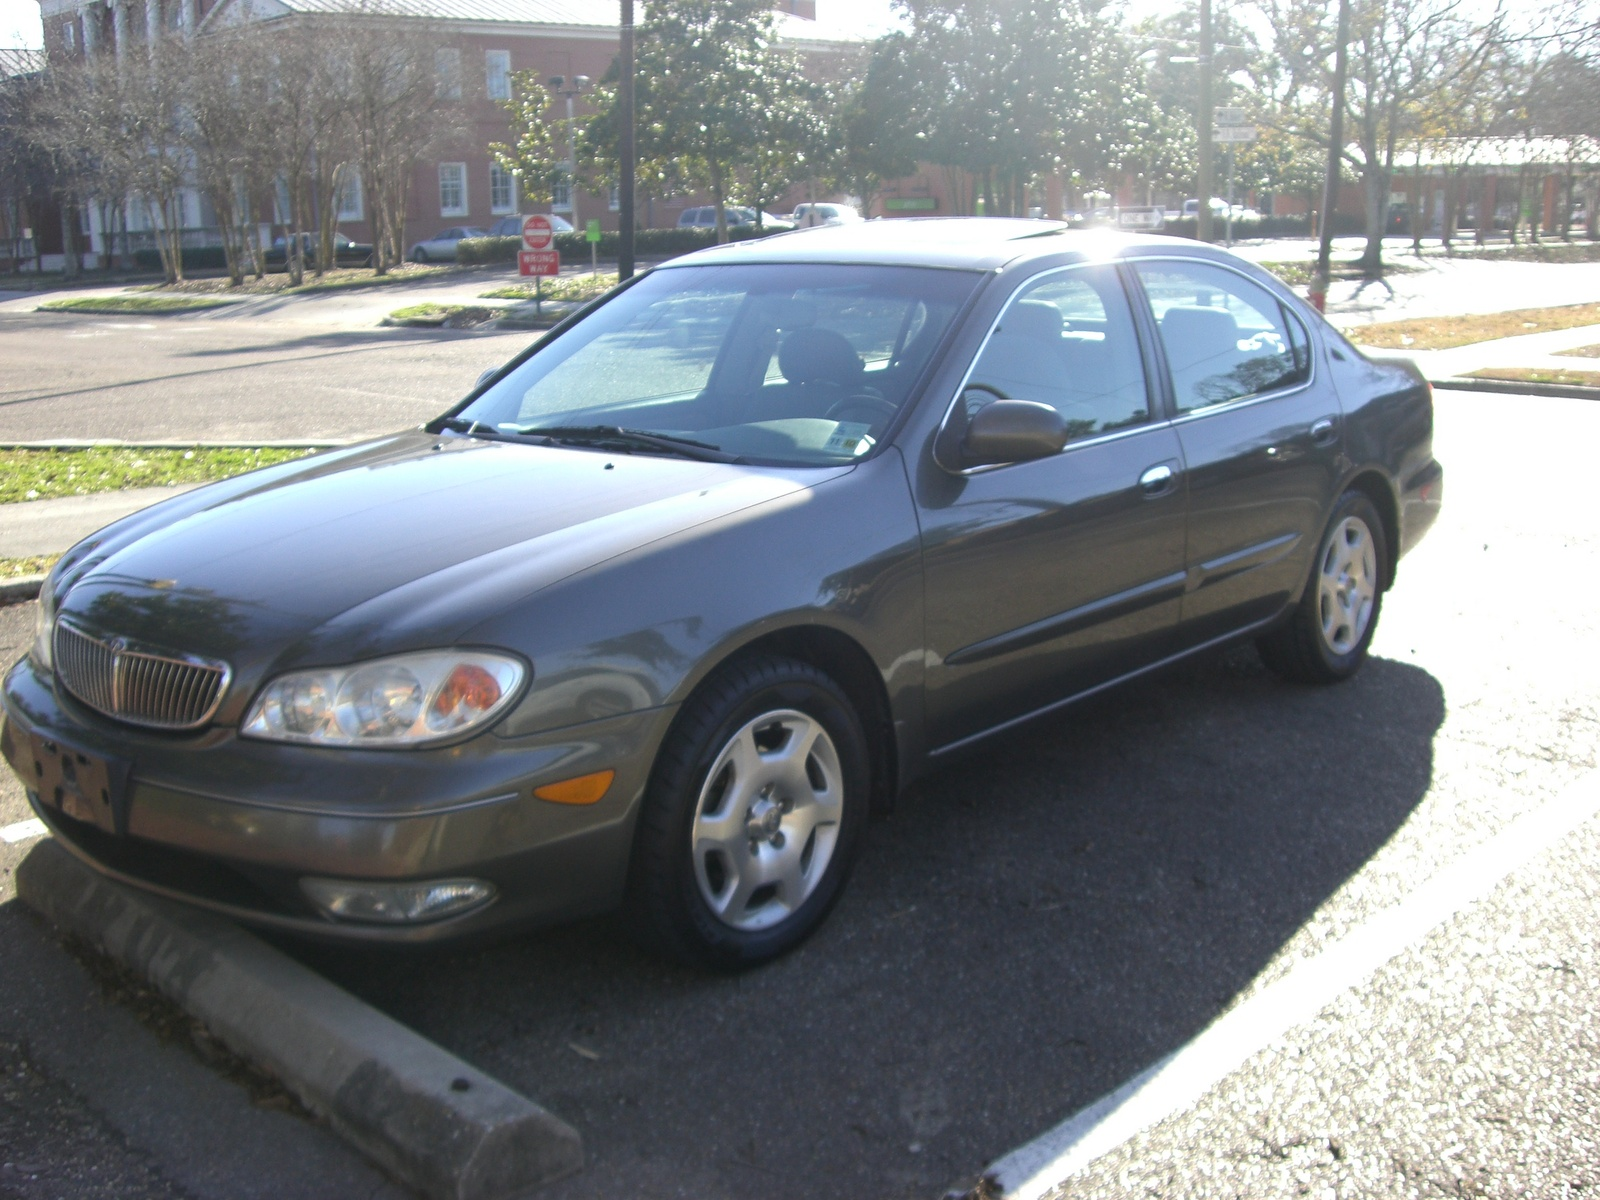 2000 Infiniti I30 4 Dr Touring Sedan picture